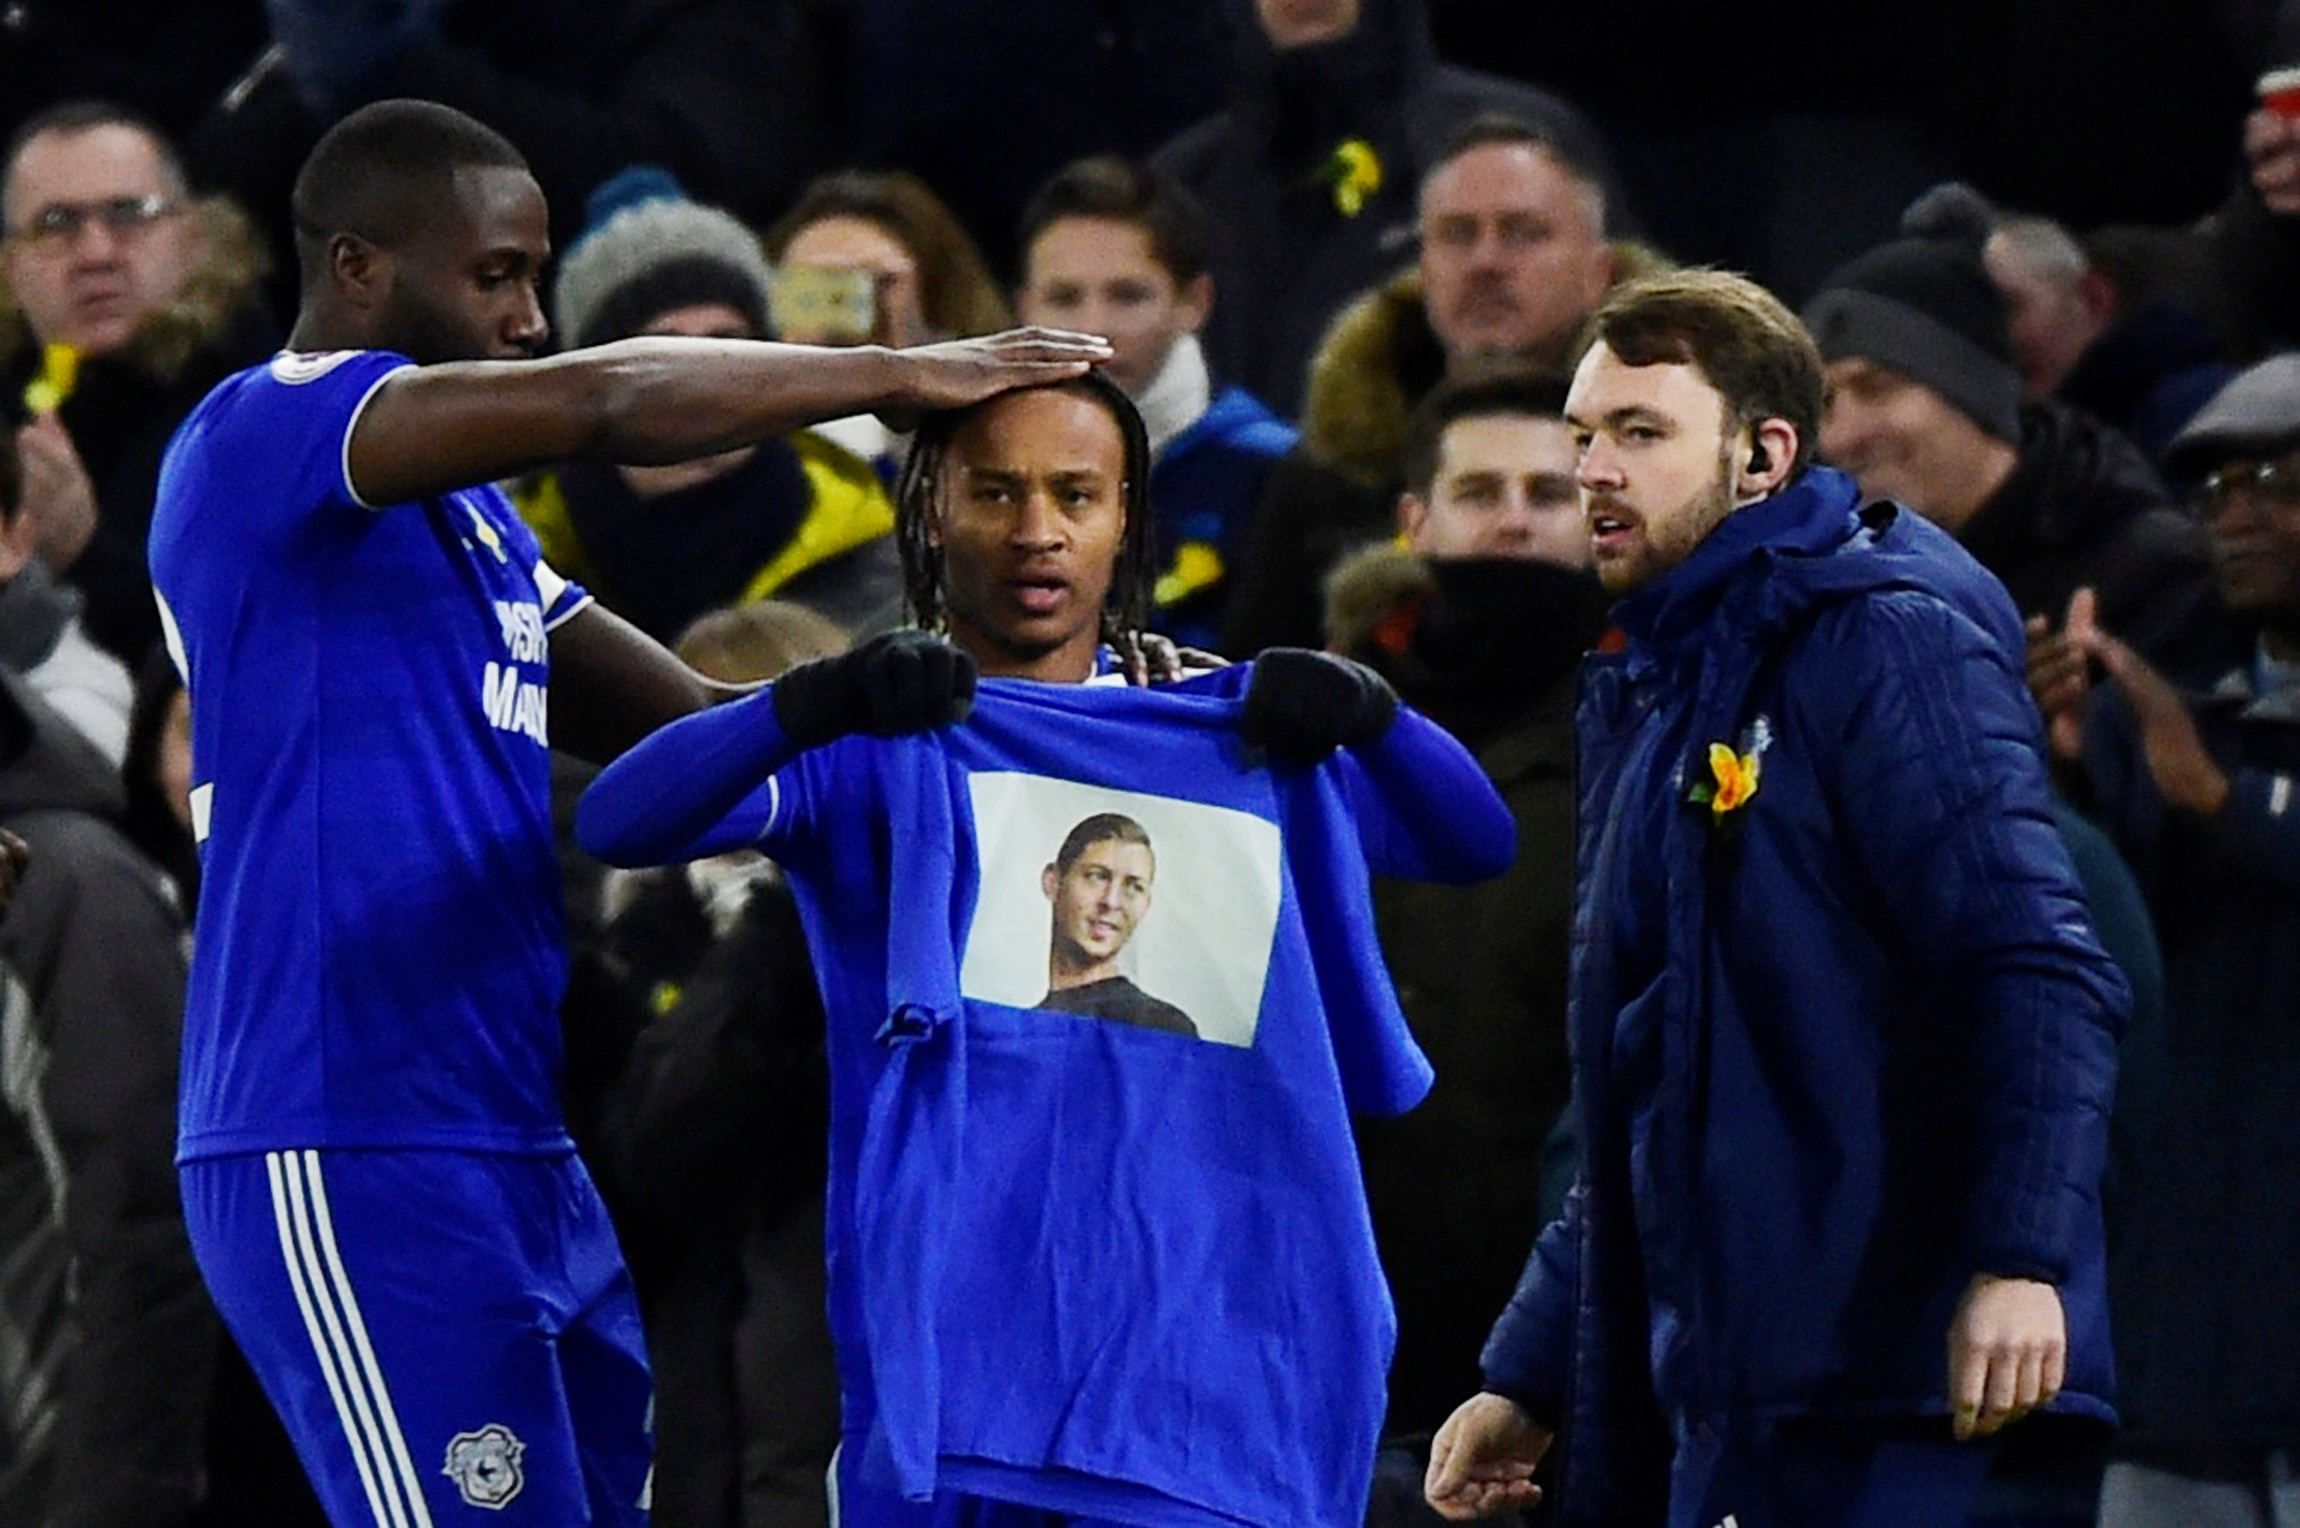 Soccer Football - Premier League - Cardiff City v AFC Bournemouth - Cardiff City Stadium, Cardiff, Britain - February 2, 2019 Cardiff City's Bobby Reid celebrates scoring their first goal by displaying a shirt paying tribute to Emiliano Sala (REUTERS/Rebecca Naden)